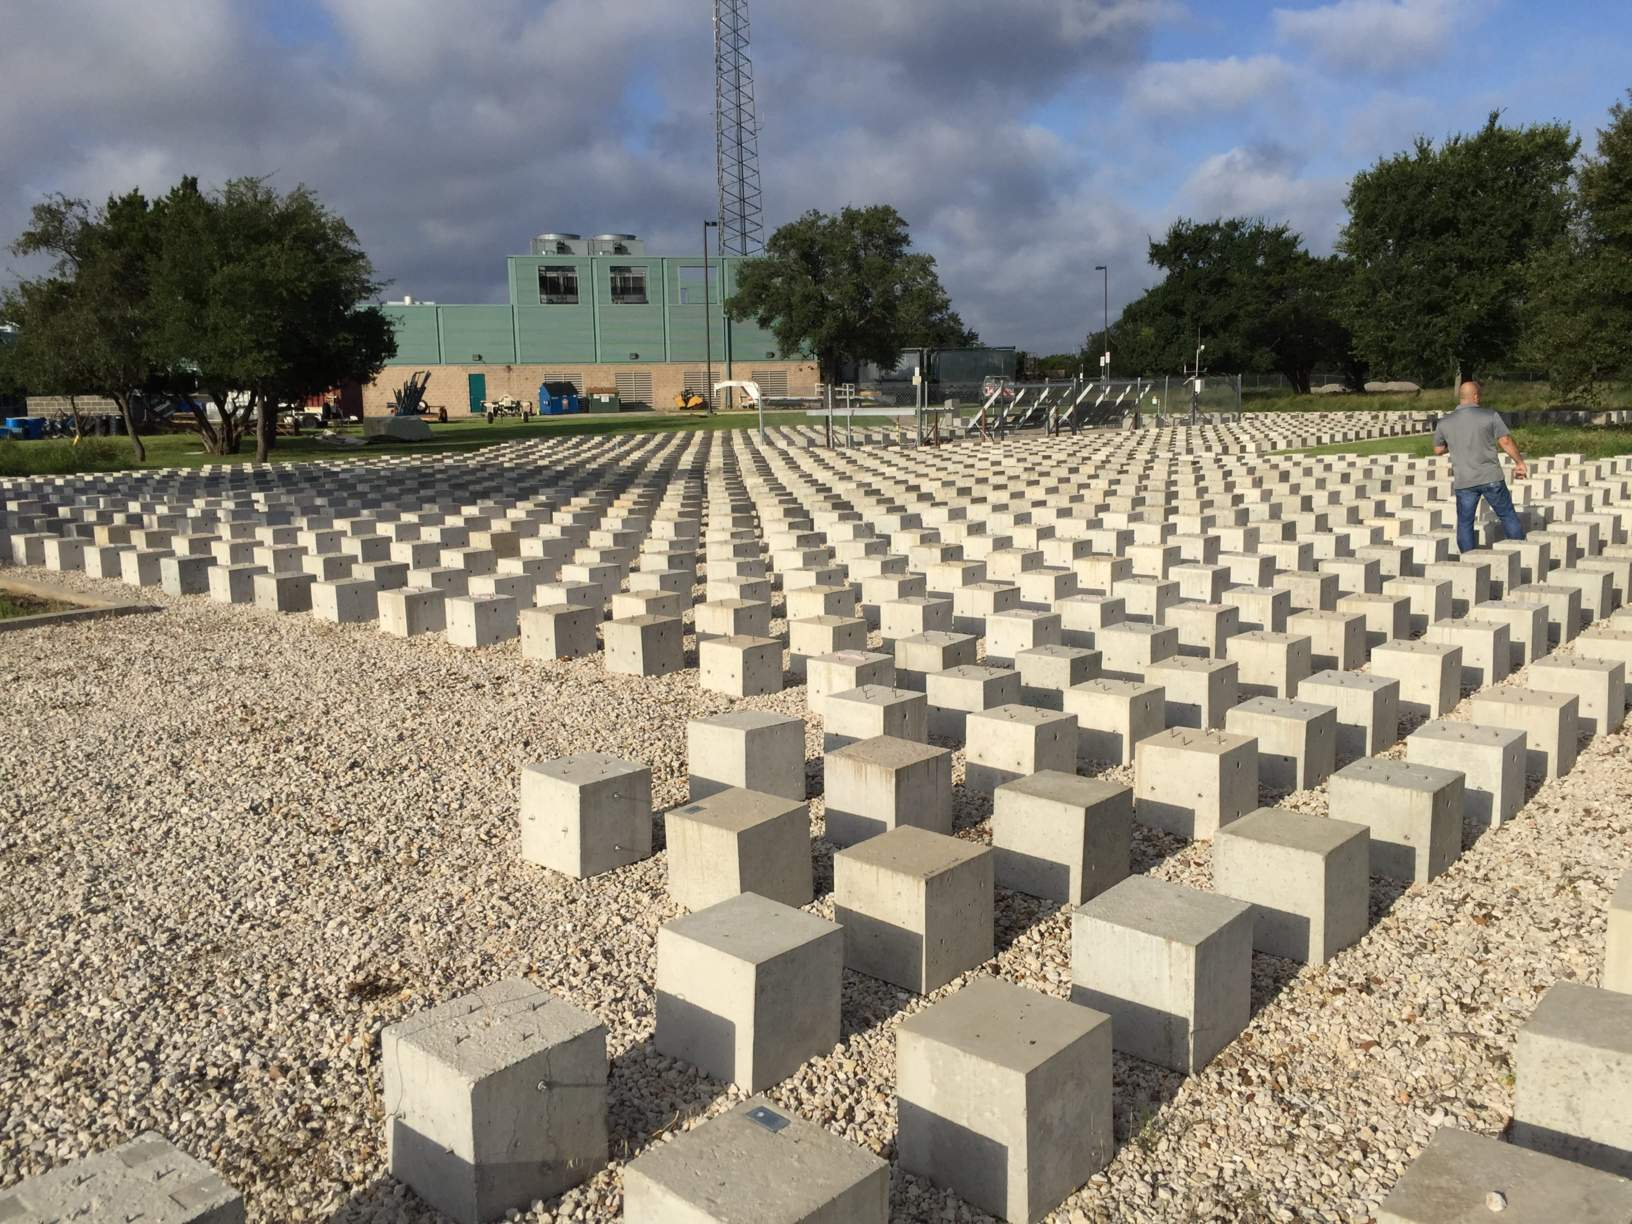 Texas Department of Transportation (TxDOT) Concrete Exposure Site located in Cedar Park, TX